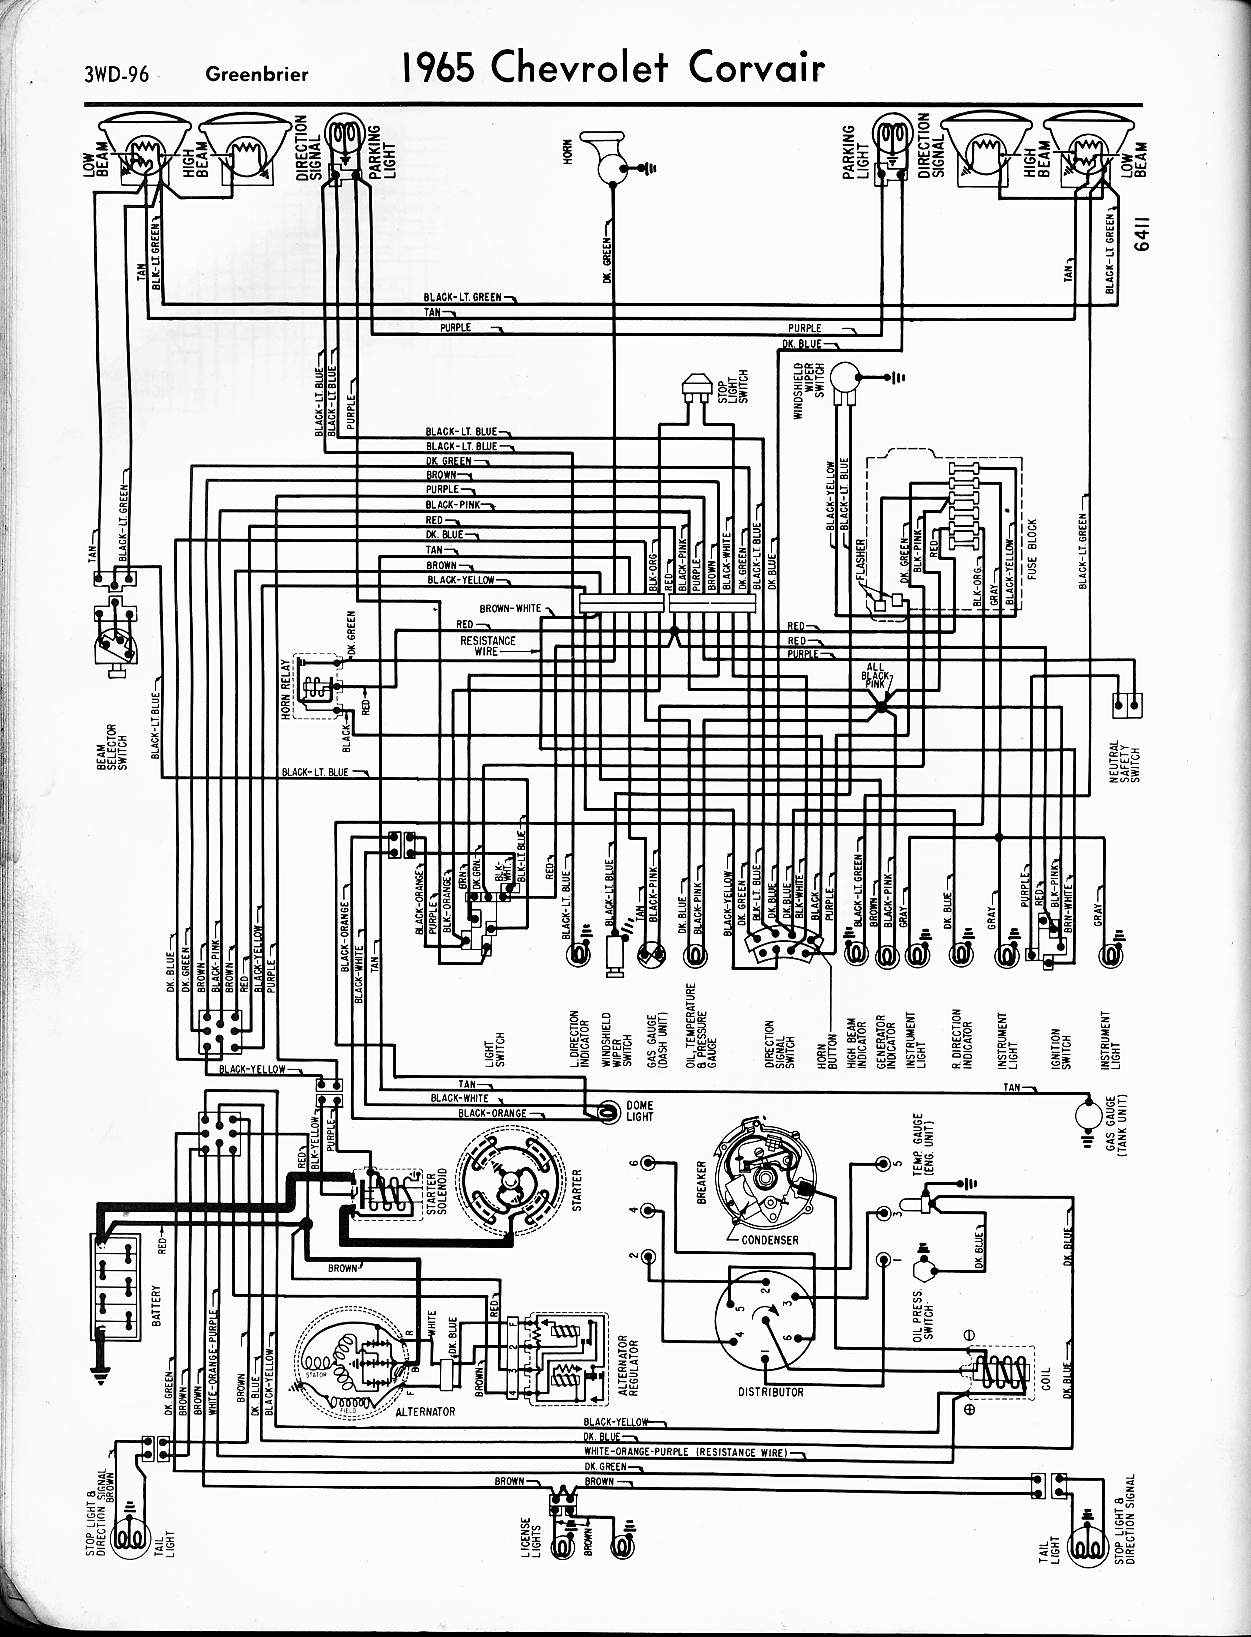 1963 Chevy Impala Fuse Block Diagram, 1963, Free Engine